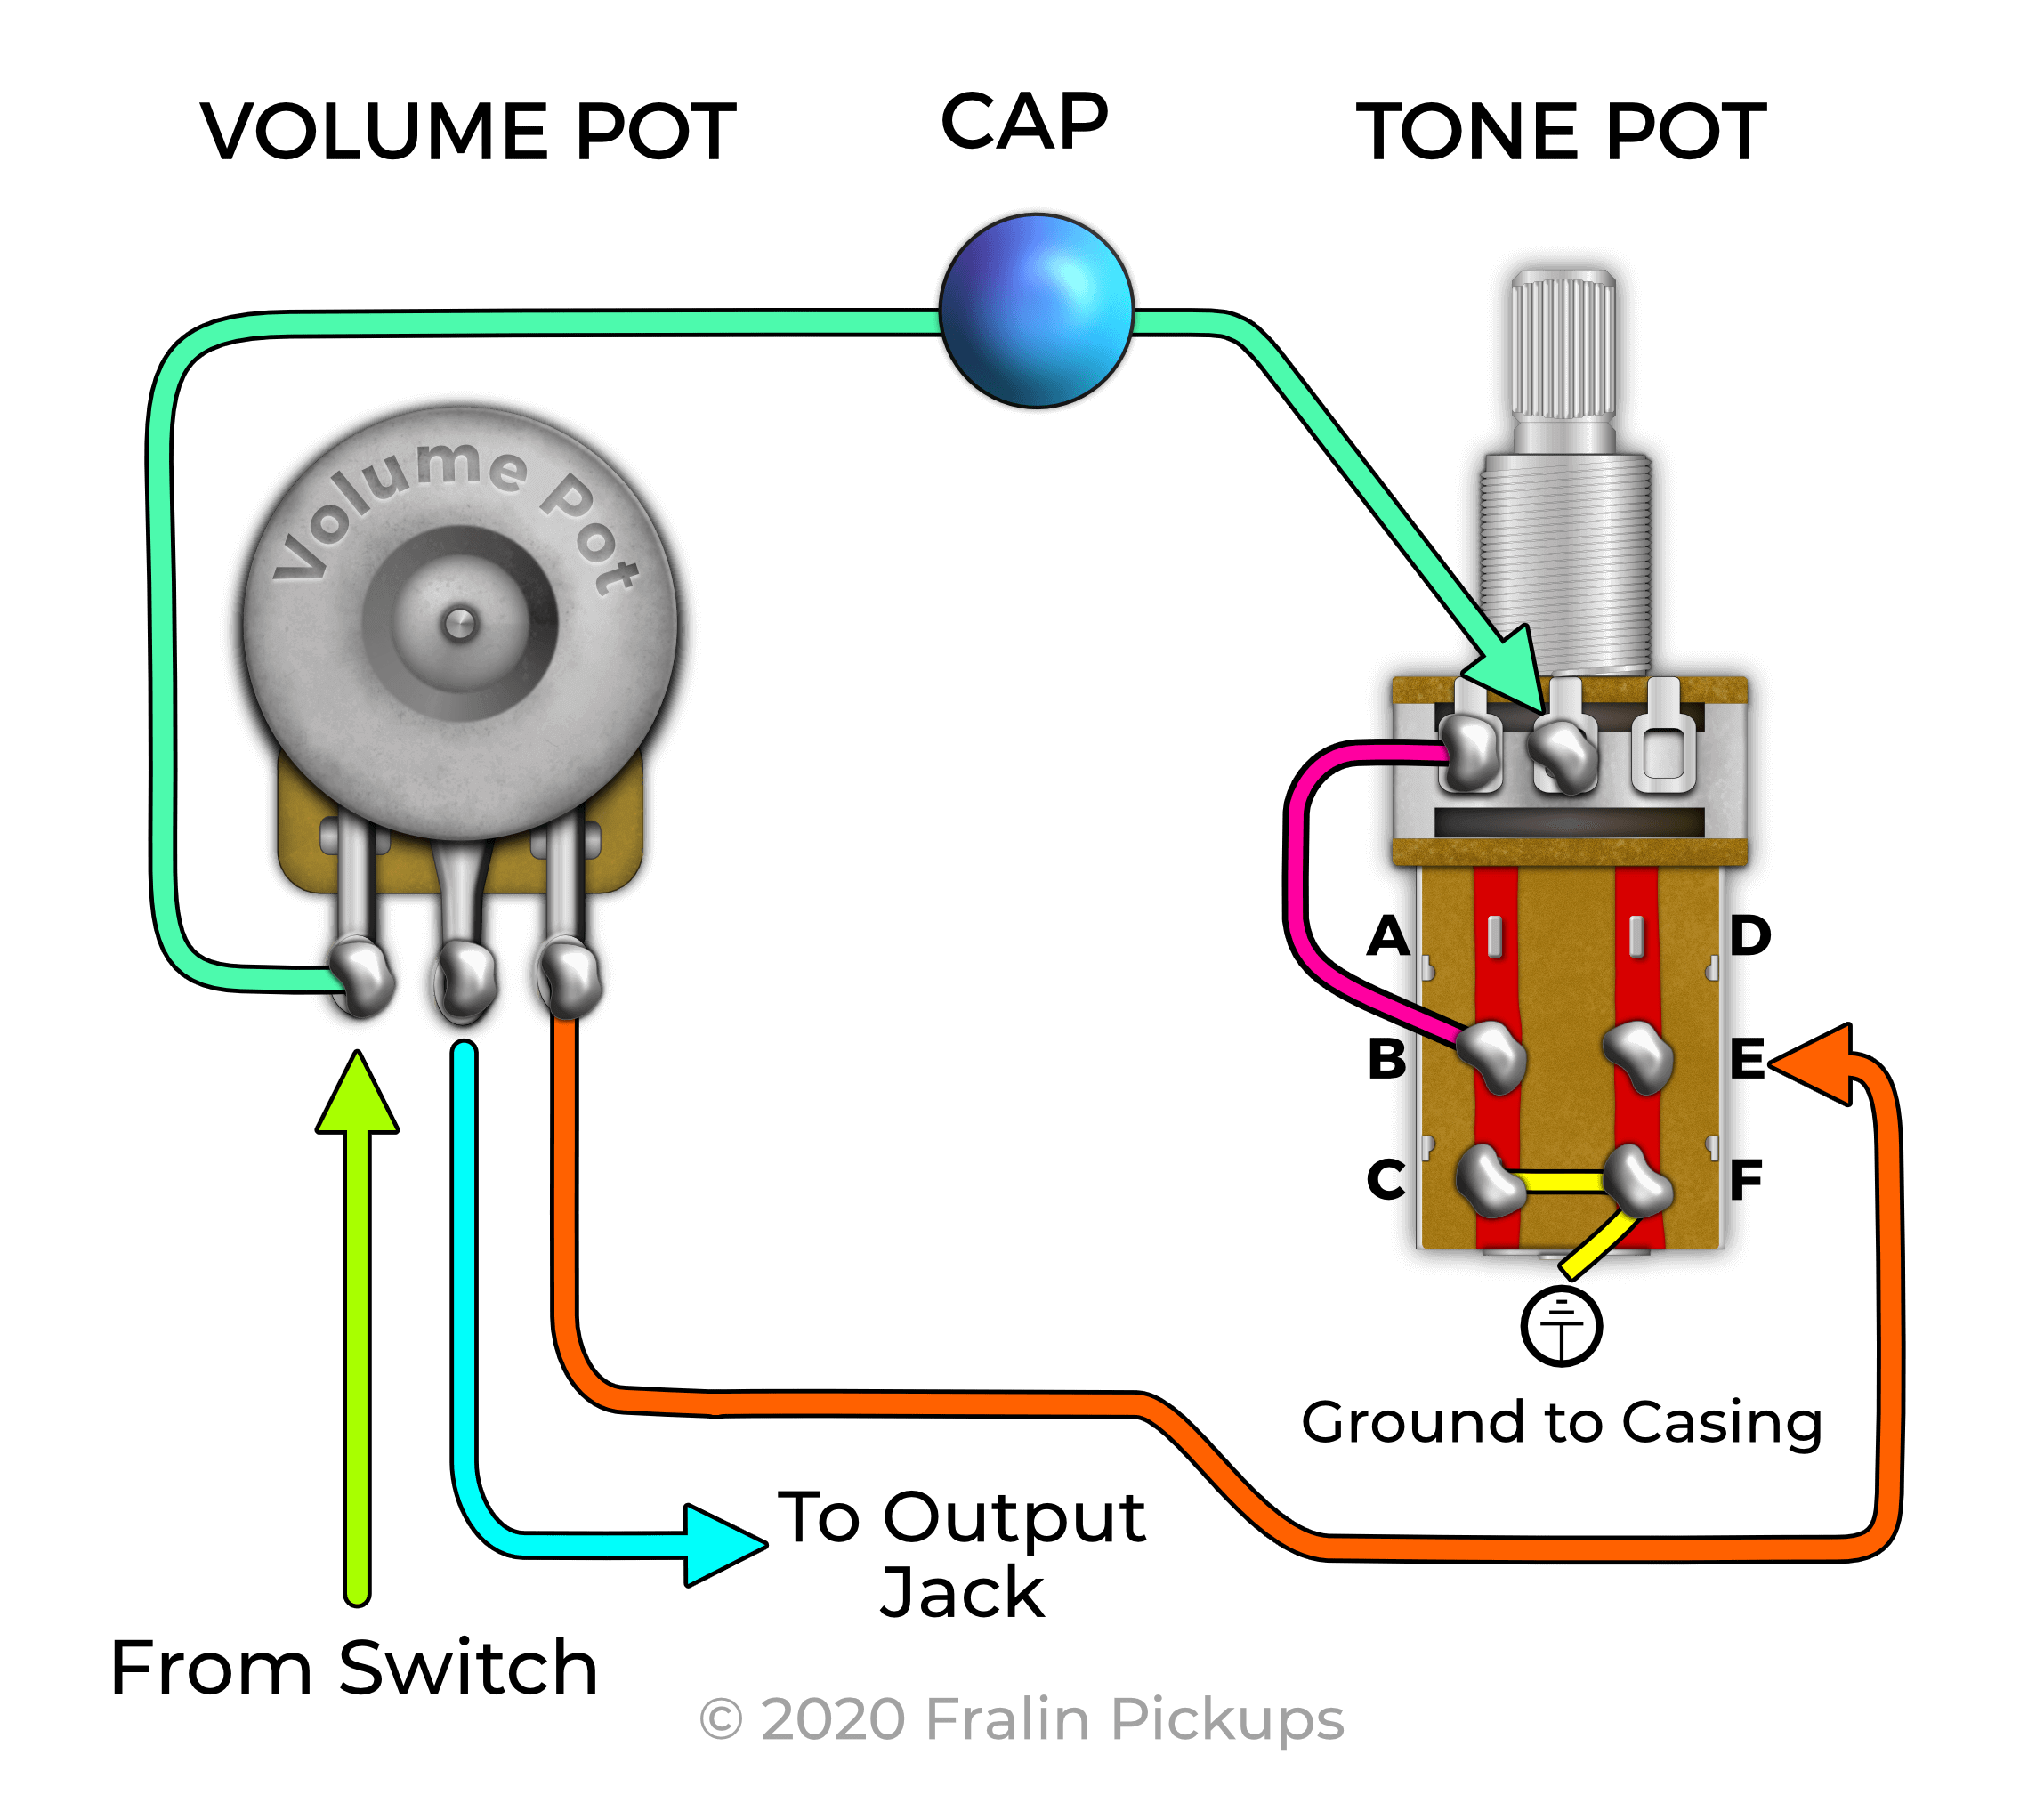 Push Pull Switch Wiring Diagram from www.fralinpickups.com